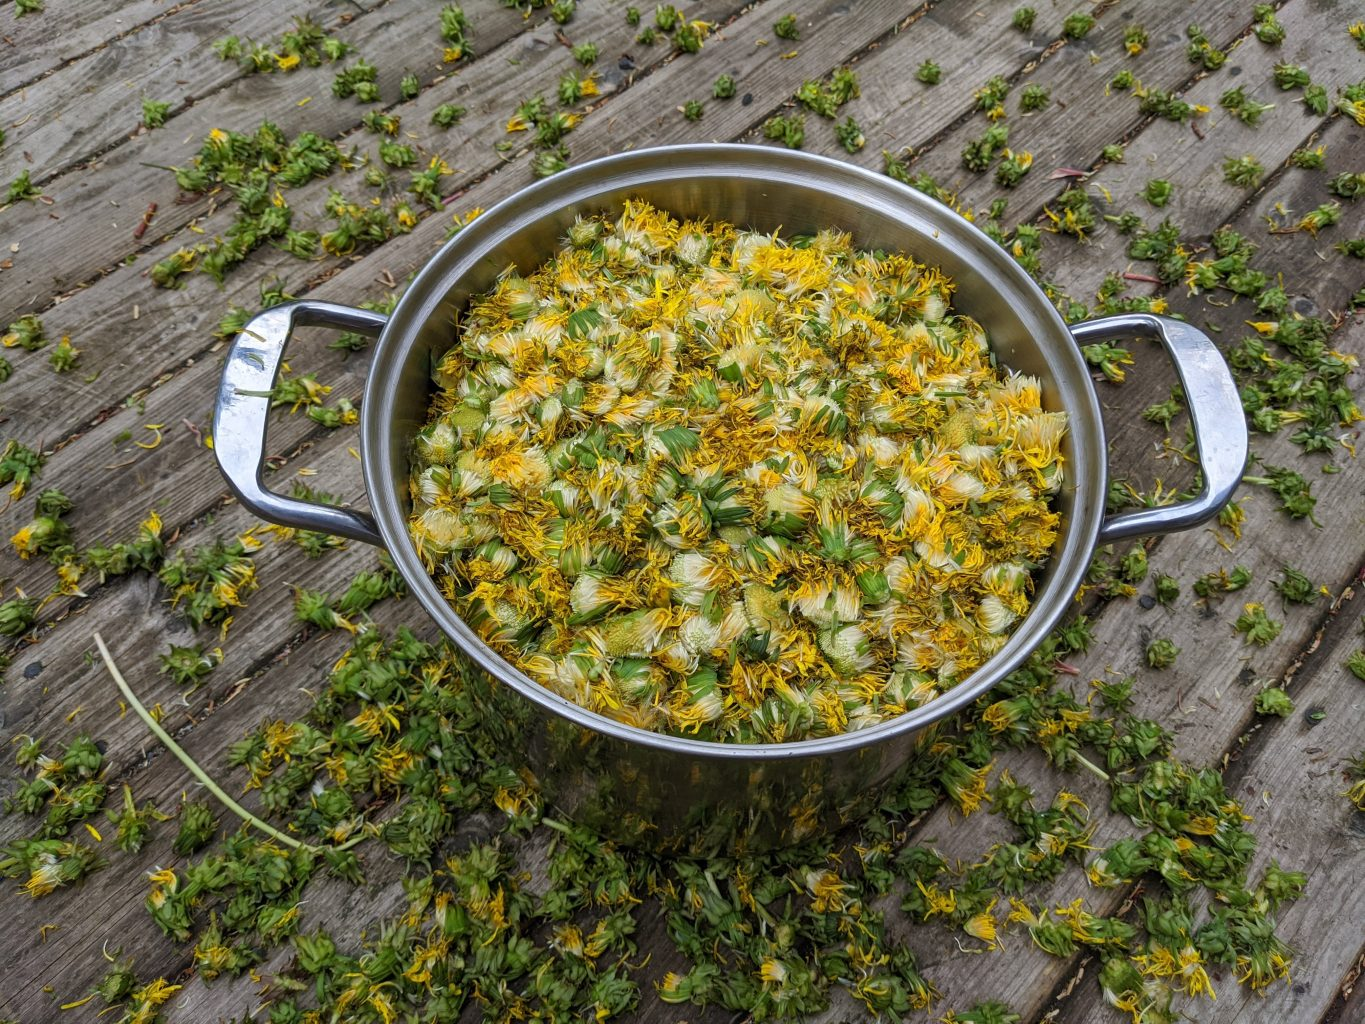 Large, two-handled metal cooking pan filled with picked dandelion flowers, on a wooden floor scattered with picked dandelion flowers